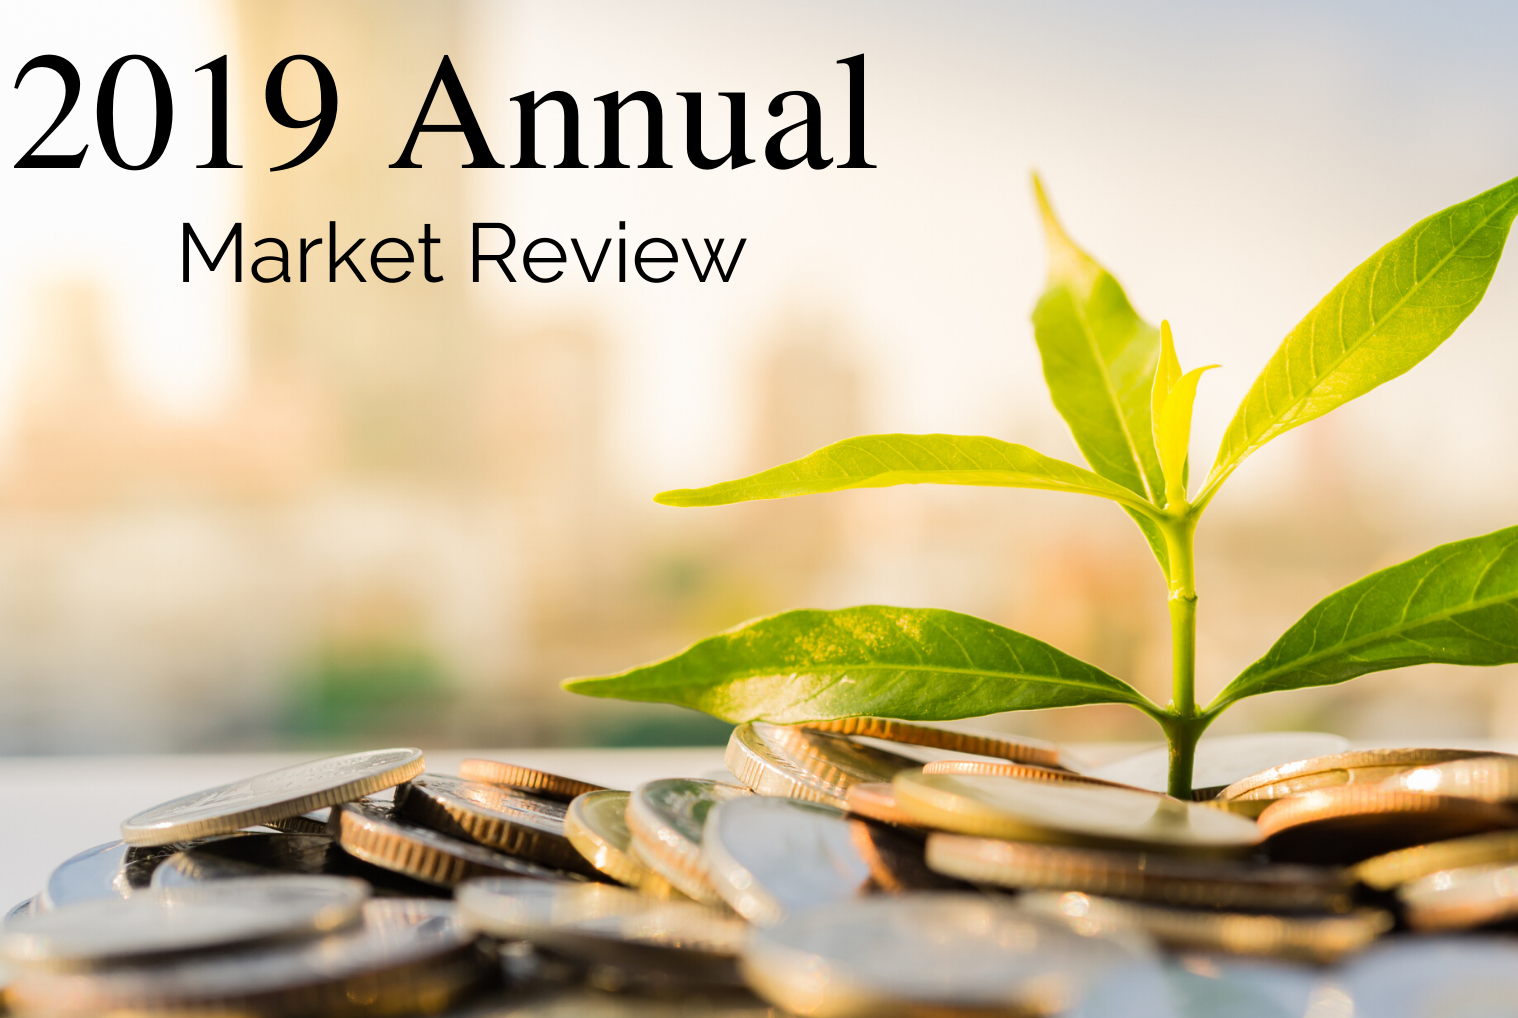 2019 Annual Market Review